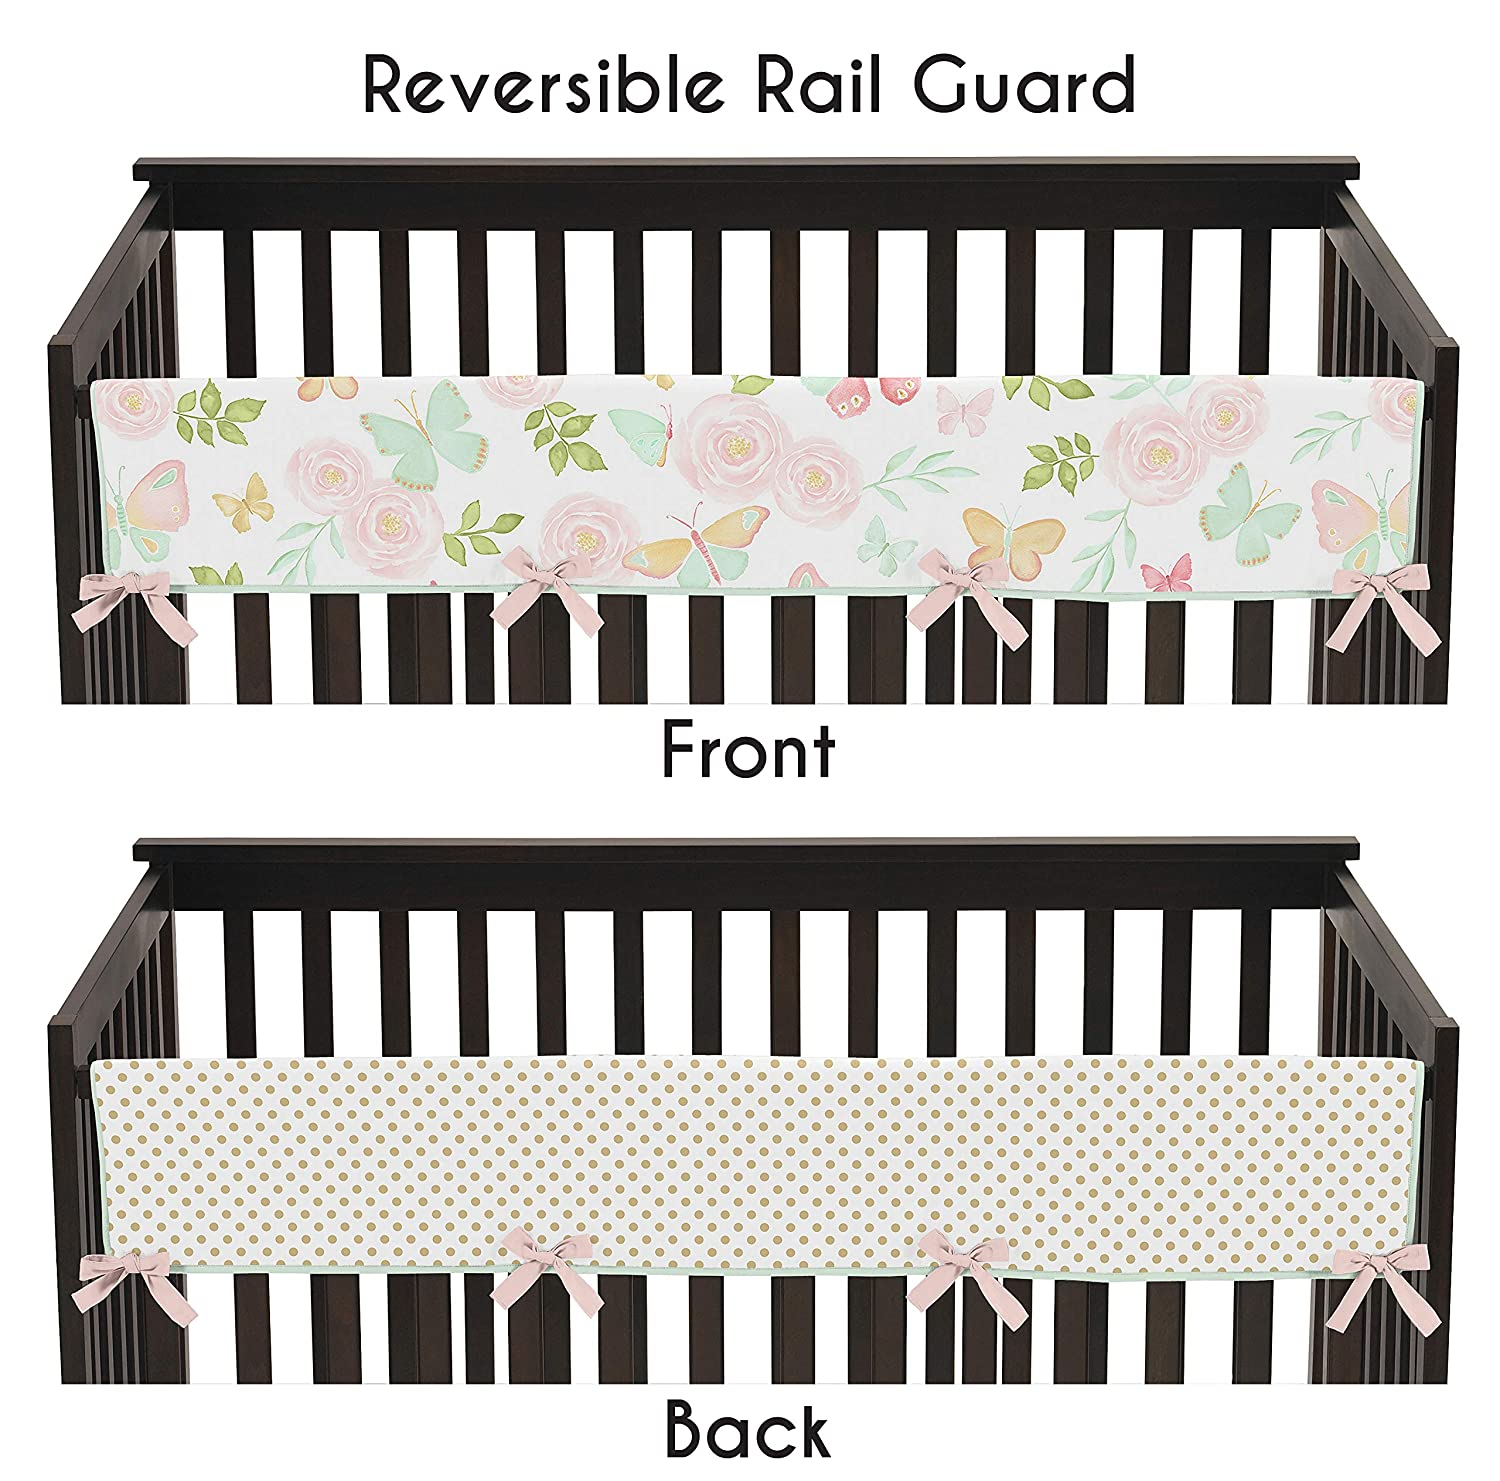 Sweet Jojo Designs Blush Pink, Mint, Gold and White Watercolor Rose Polka Dot Long Front Crib Rail Guard Baby Teething Cover Protector Wrap for Butterfly Floral Collection